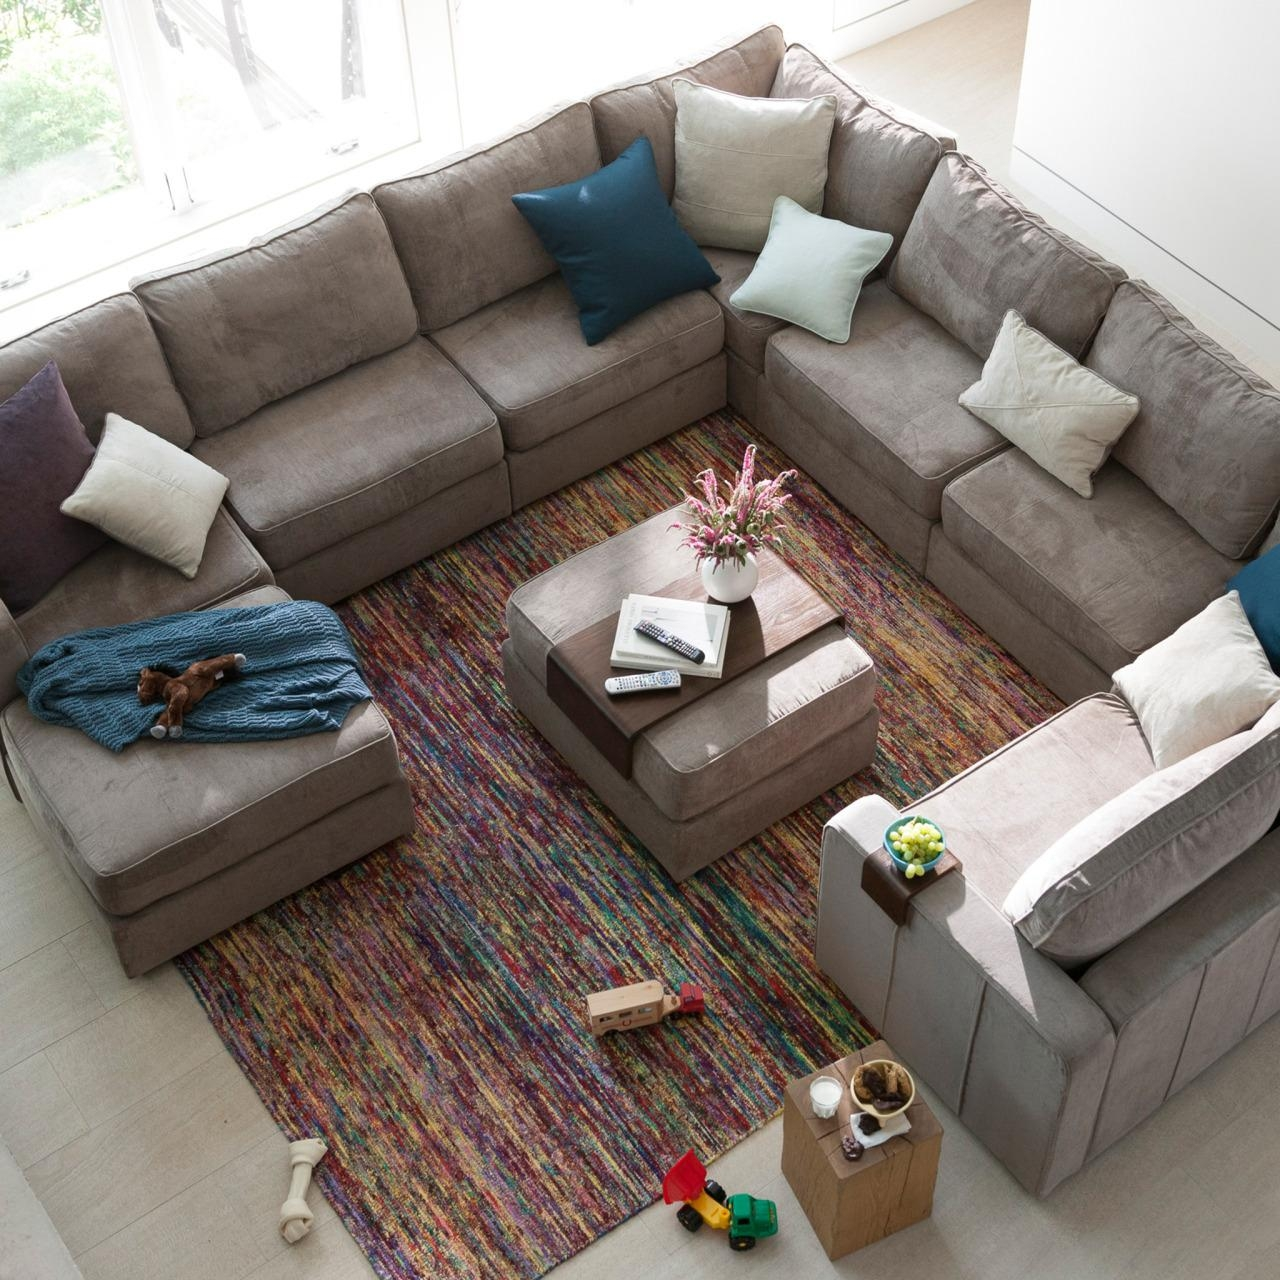 Lovesac — We Make Sactionals, The Most Adaptable Couch In The Pertaining To Love Sac Sofas (View 2 of 20)